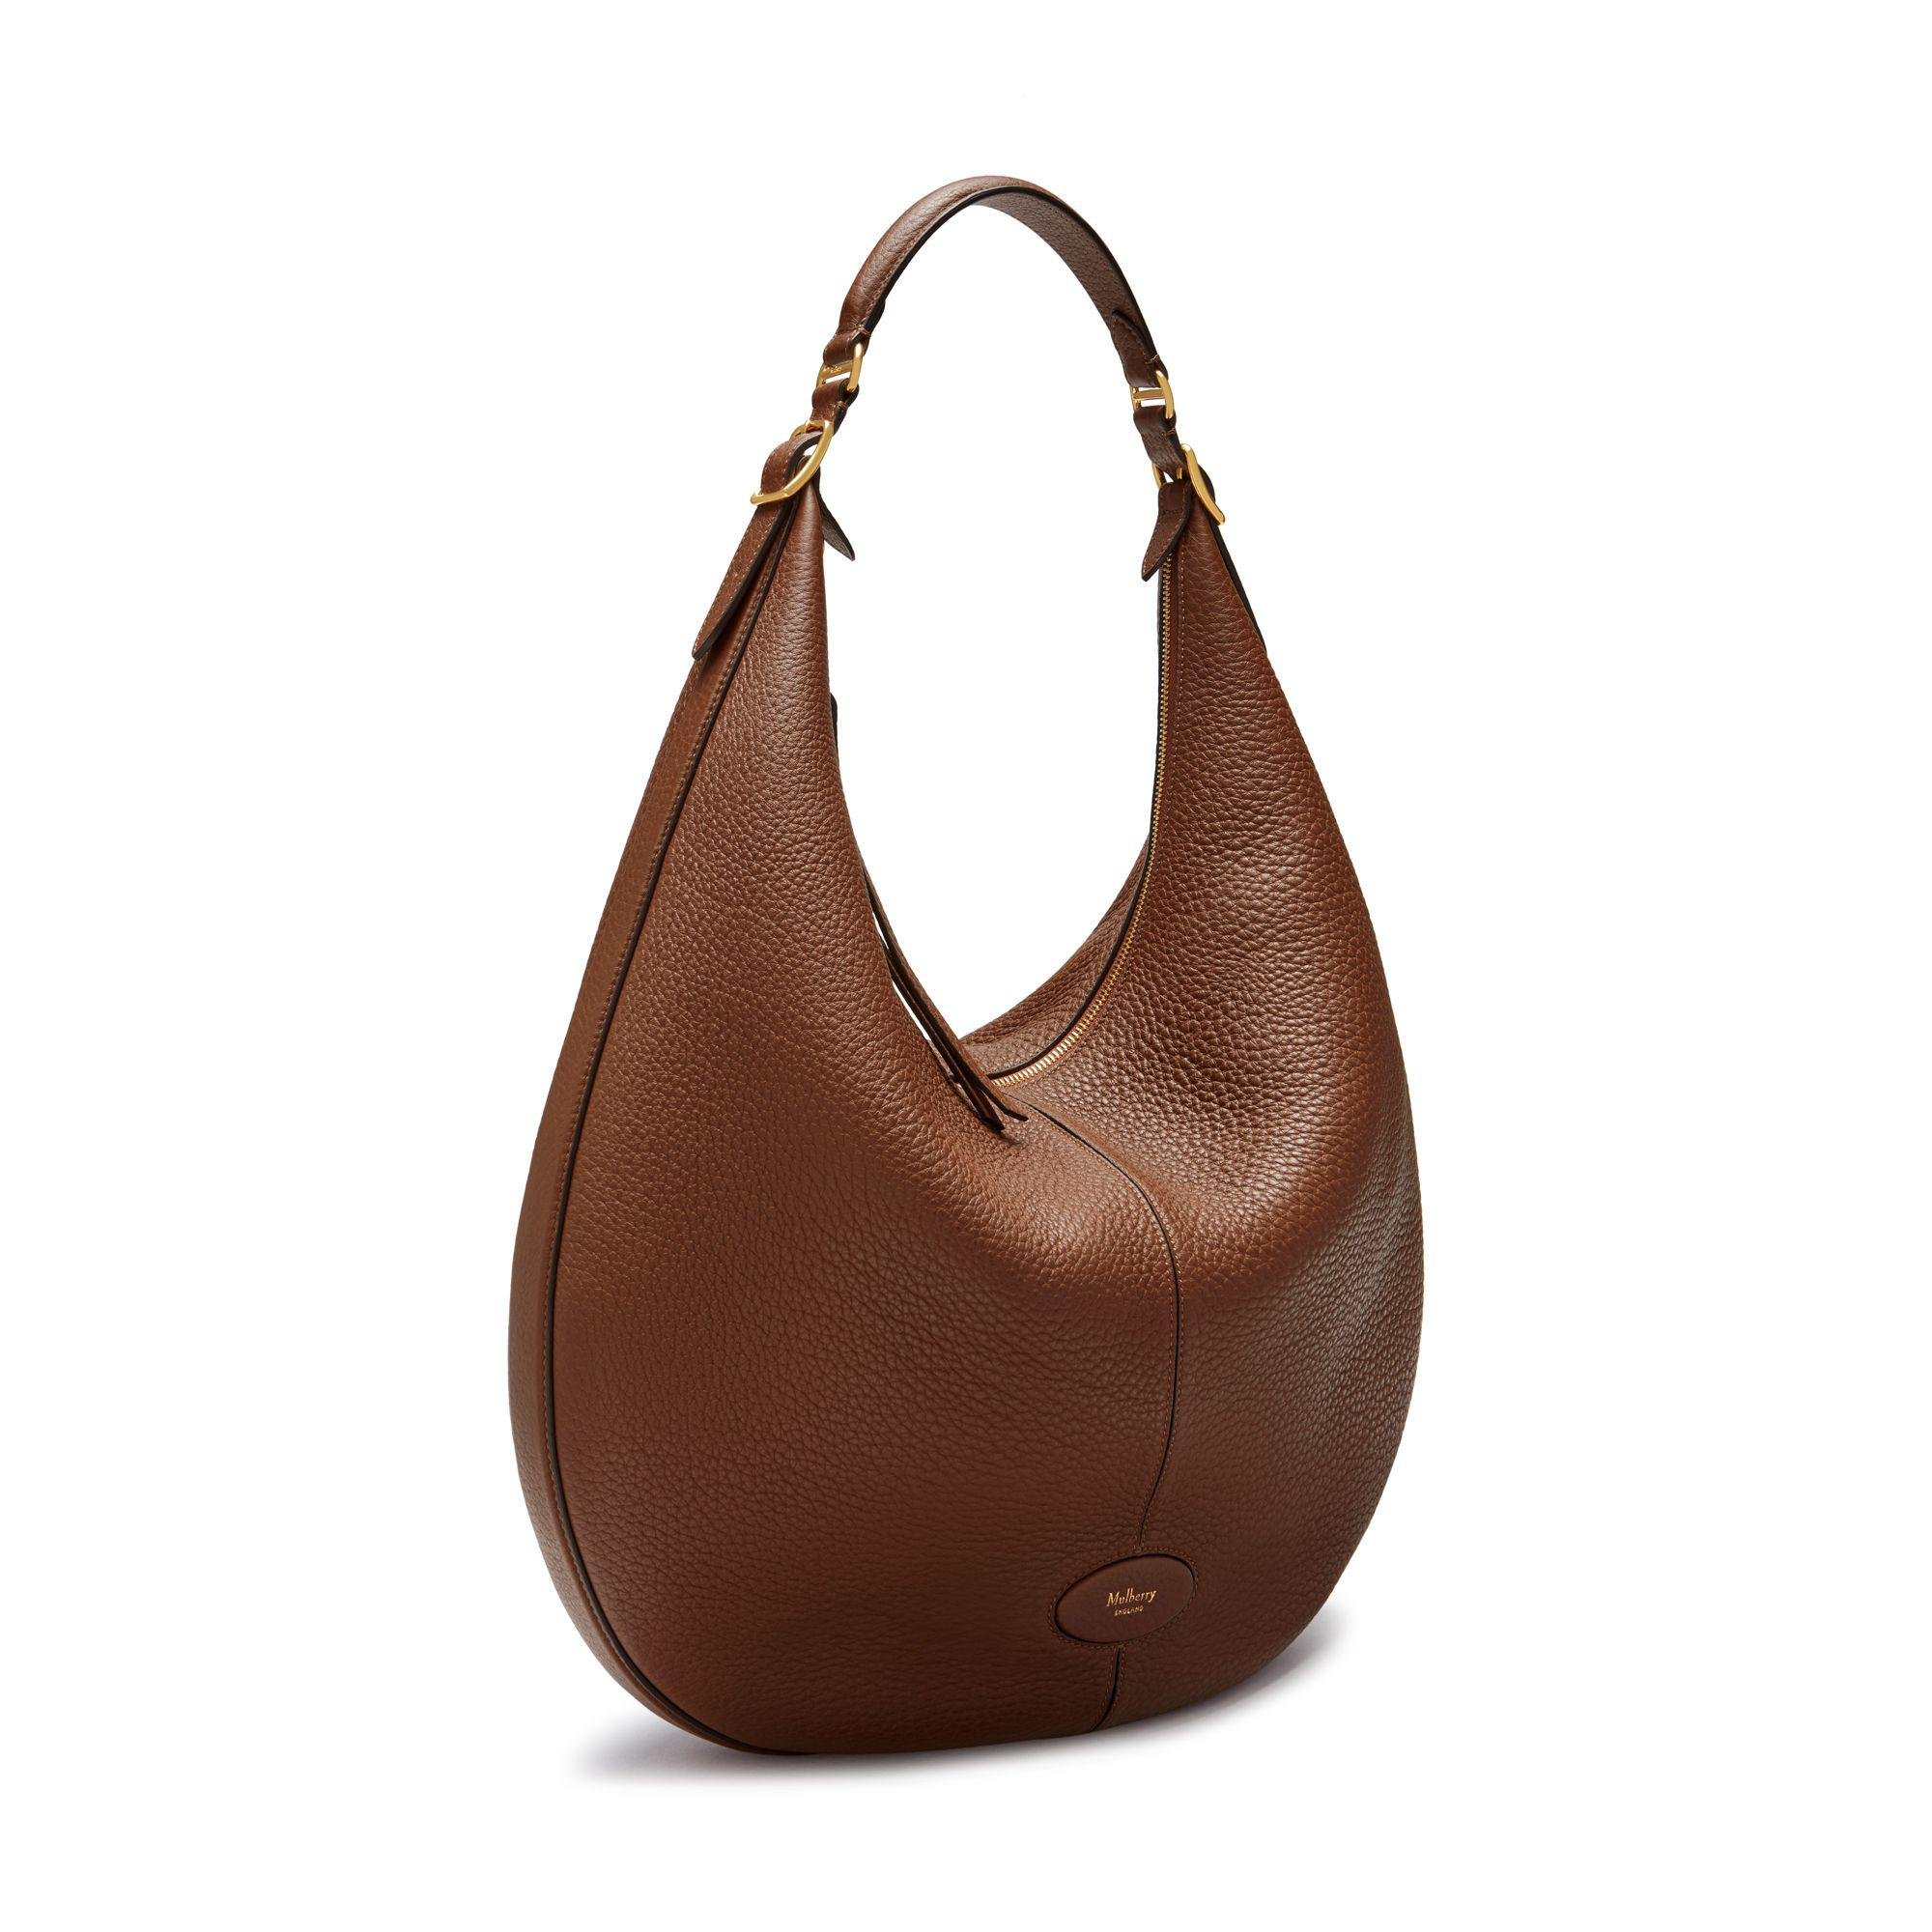 Lyst - Mulberry Large Selby in Brown 9ace817839815